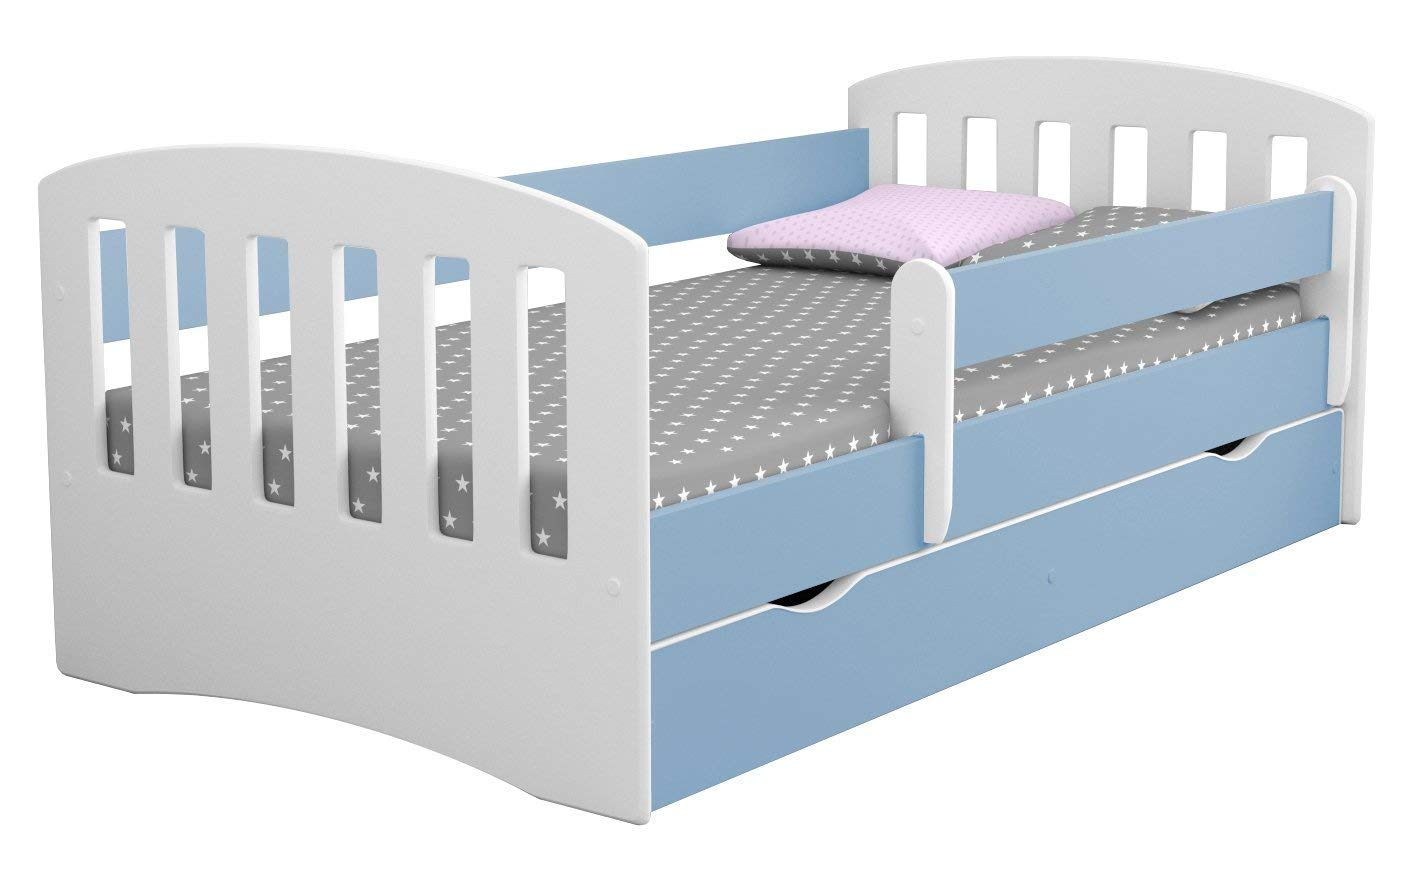 Toddler Beds Baby Products 180x80 Blue Toddler Bed Kids Bed Junior Childrens Single Bed With Mattress And Storage Included Classic